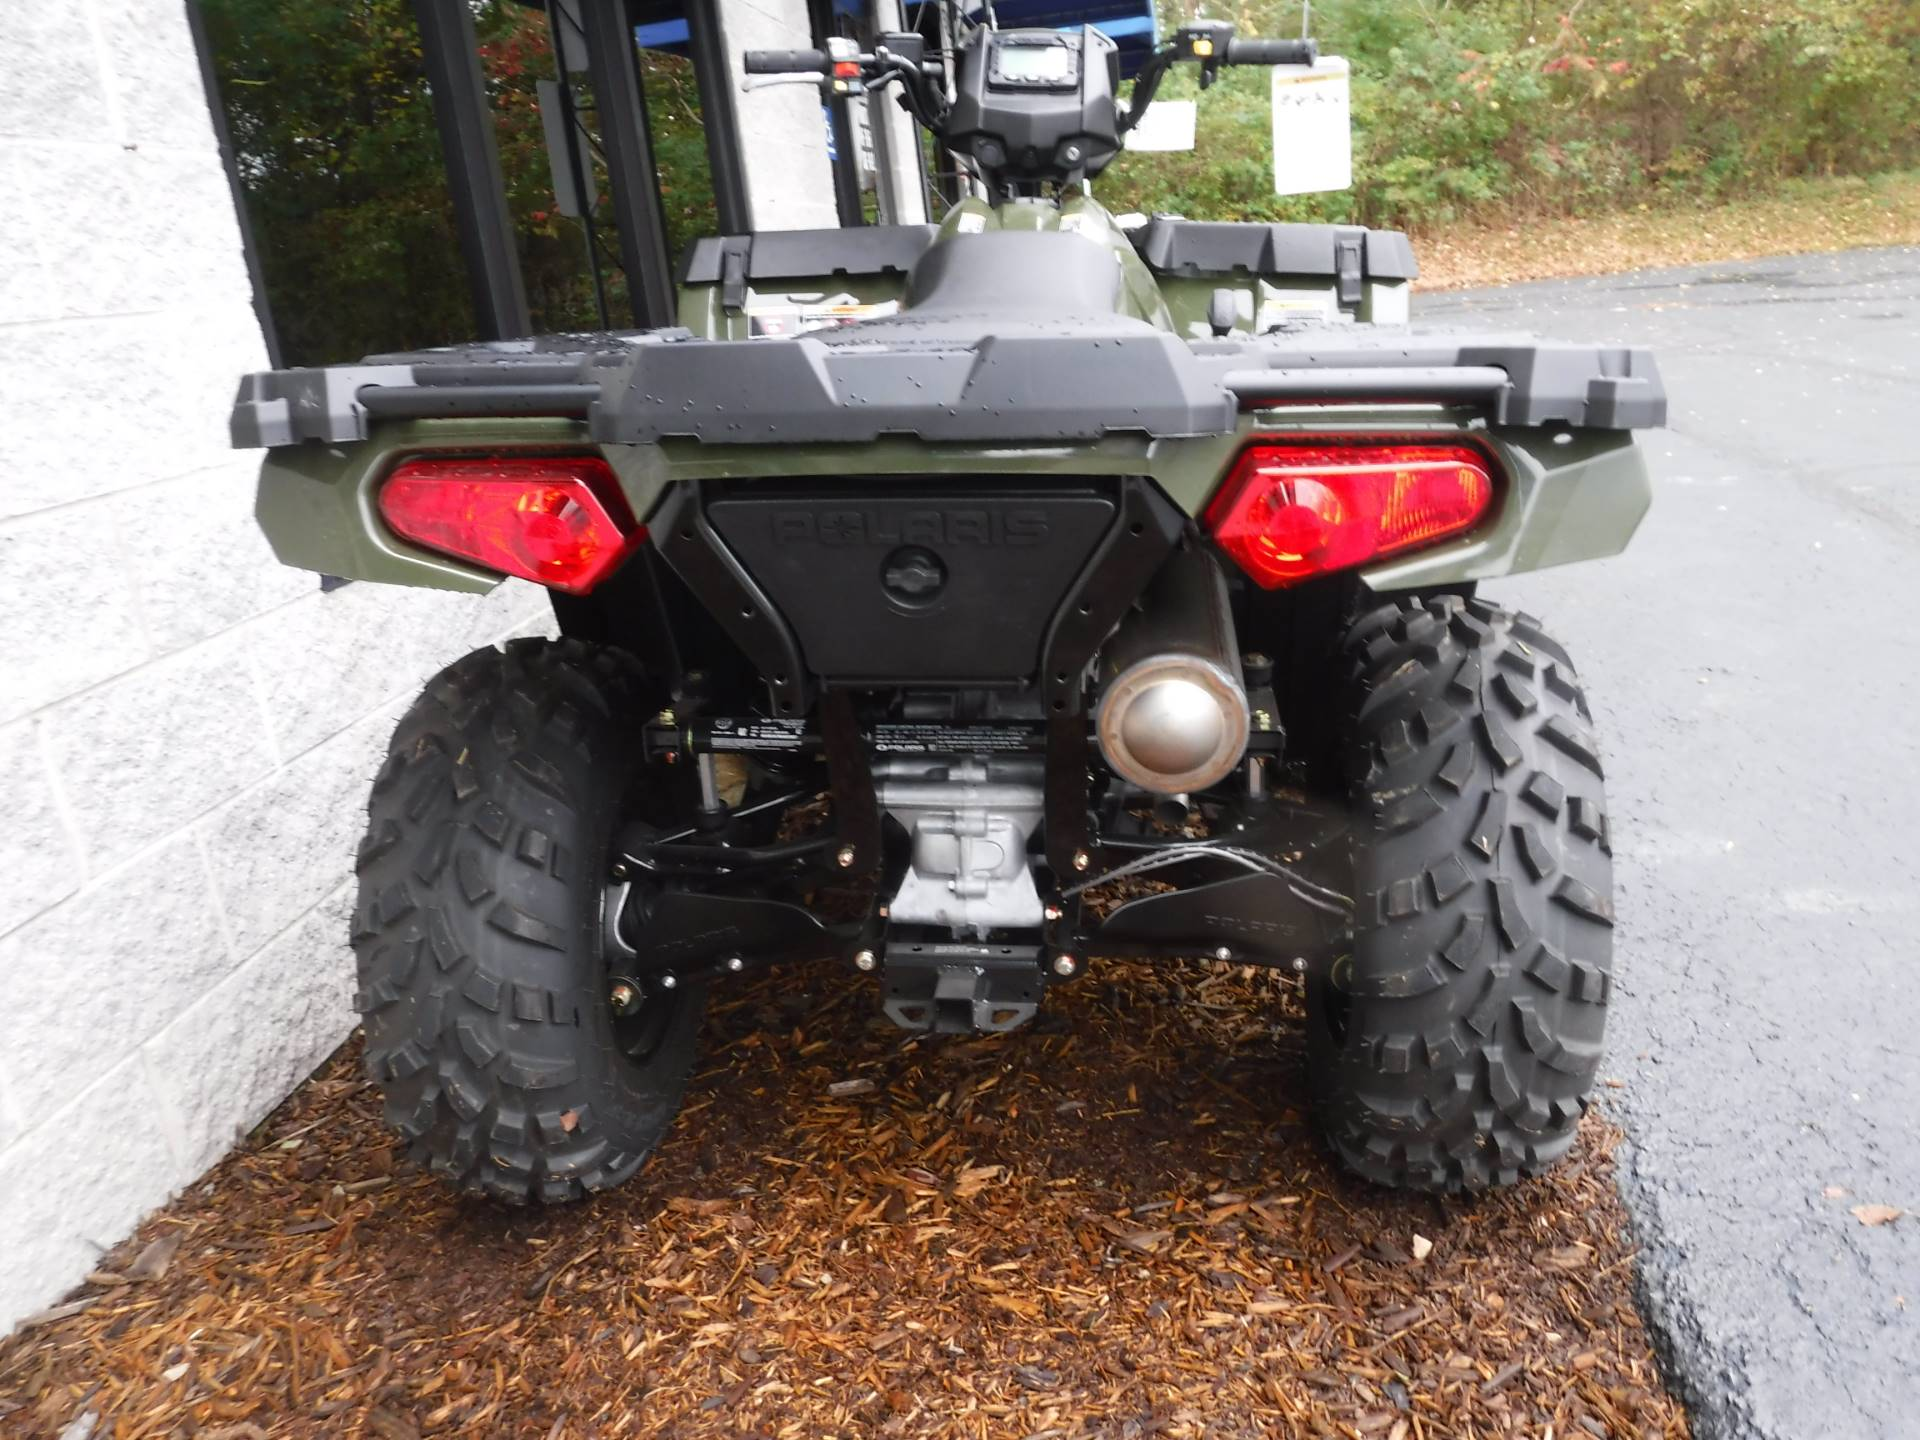 2020 Polaris Sportsman 570 in Hermitage, Pennsylvania - Photo 6